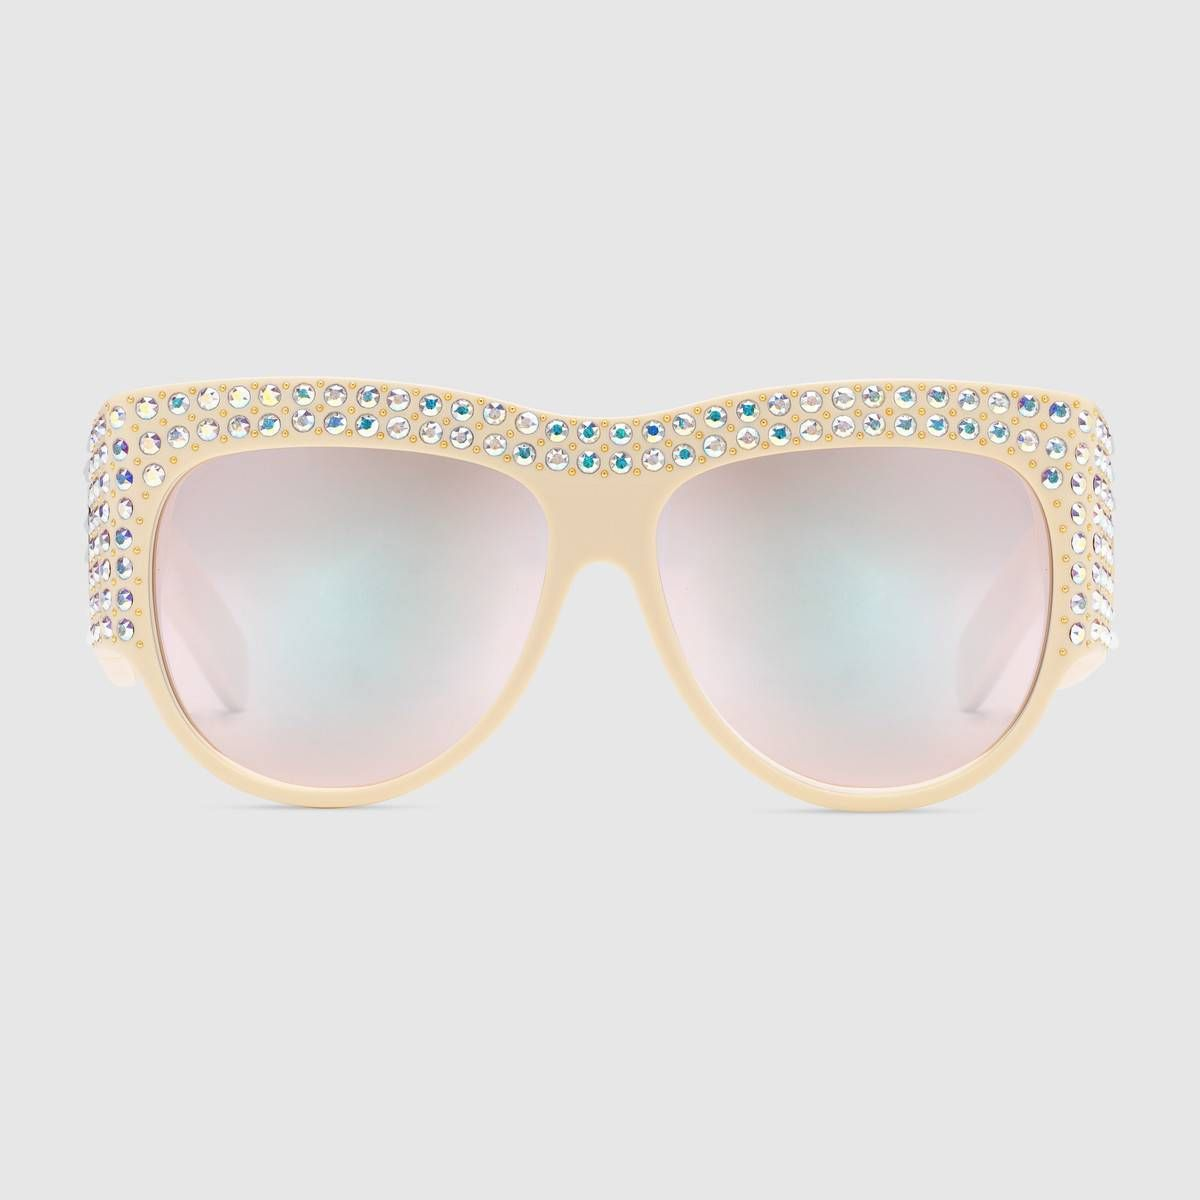 cf21eac996 Oversize sunglasses with crystals in Ivory acetate frame with hand-applied  iridescent crystals and micro studs